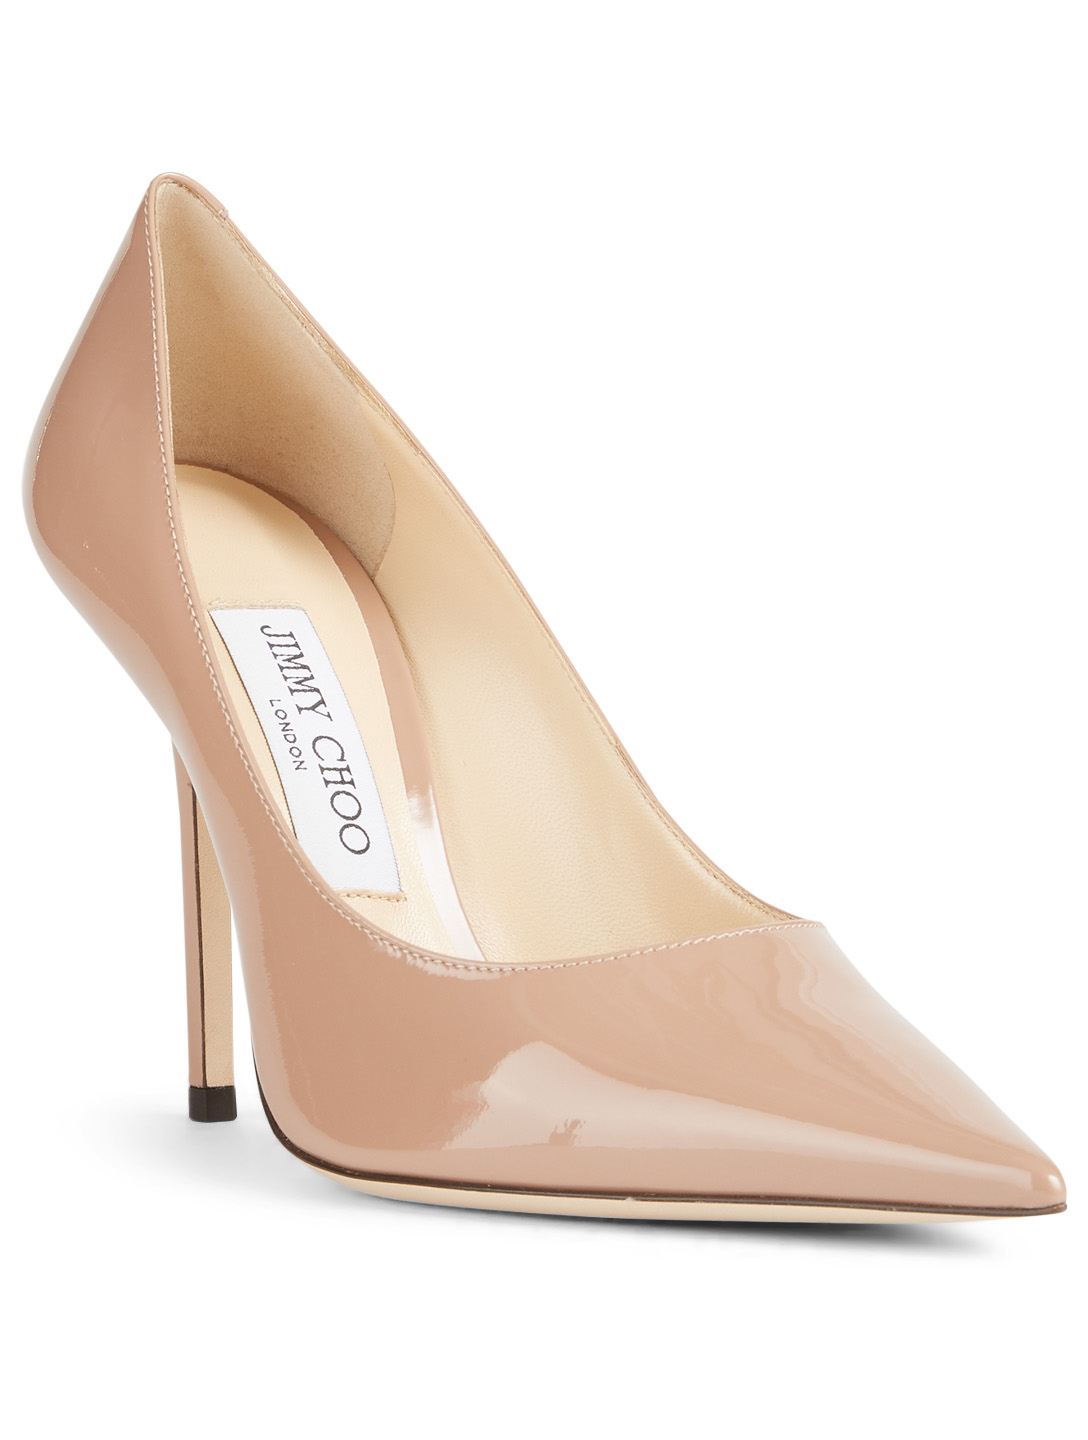 JIMMY CHOO Love 100 Patent Leather Pumps Womens Neutral